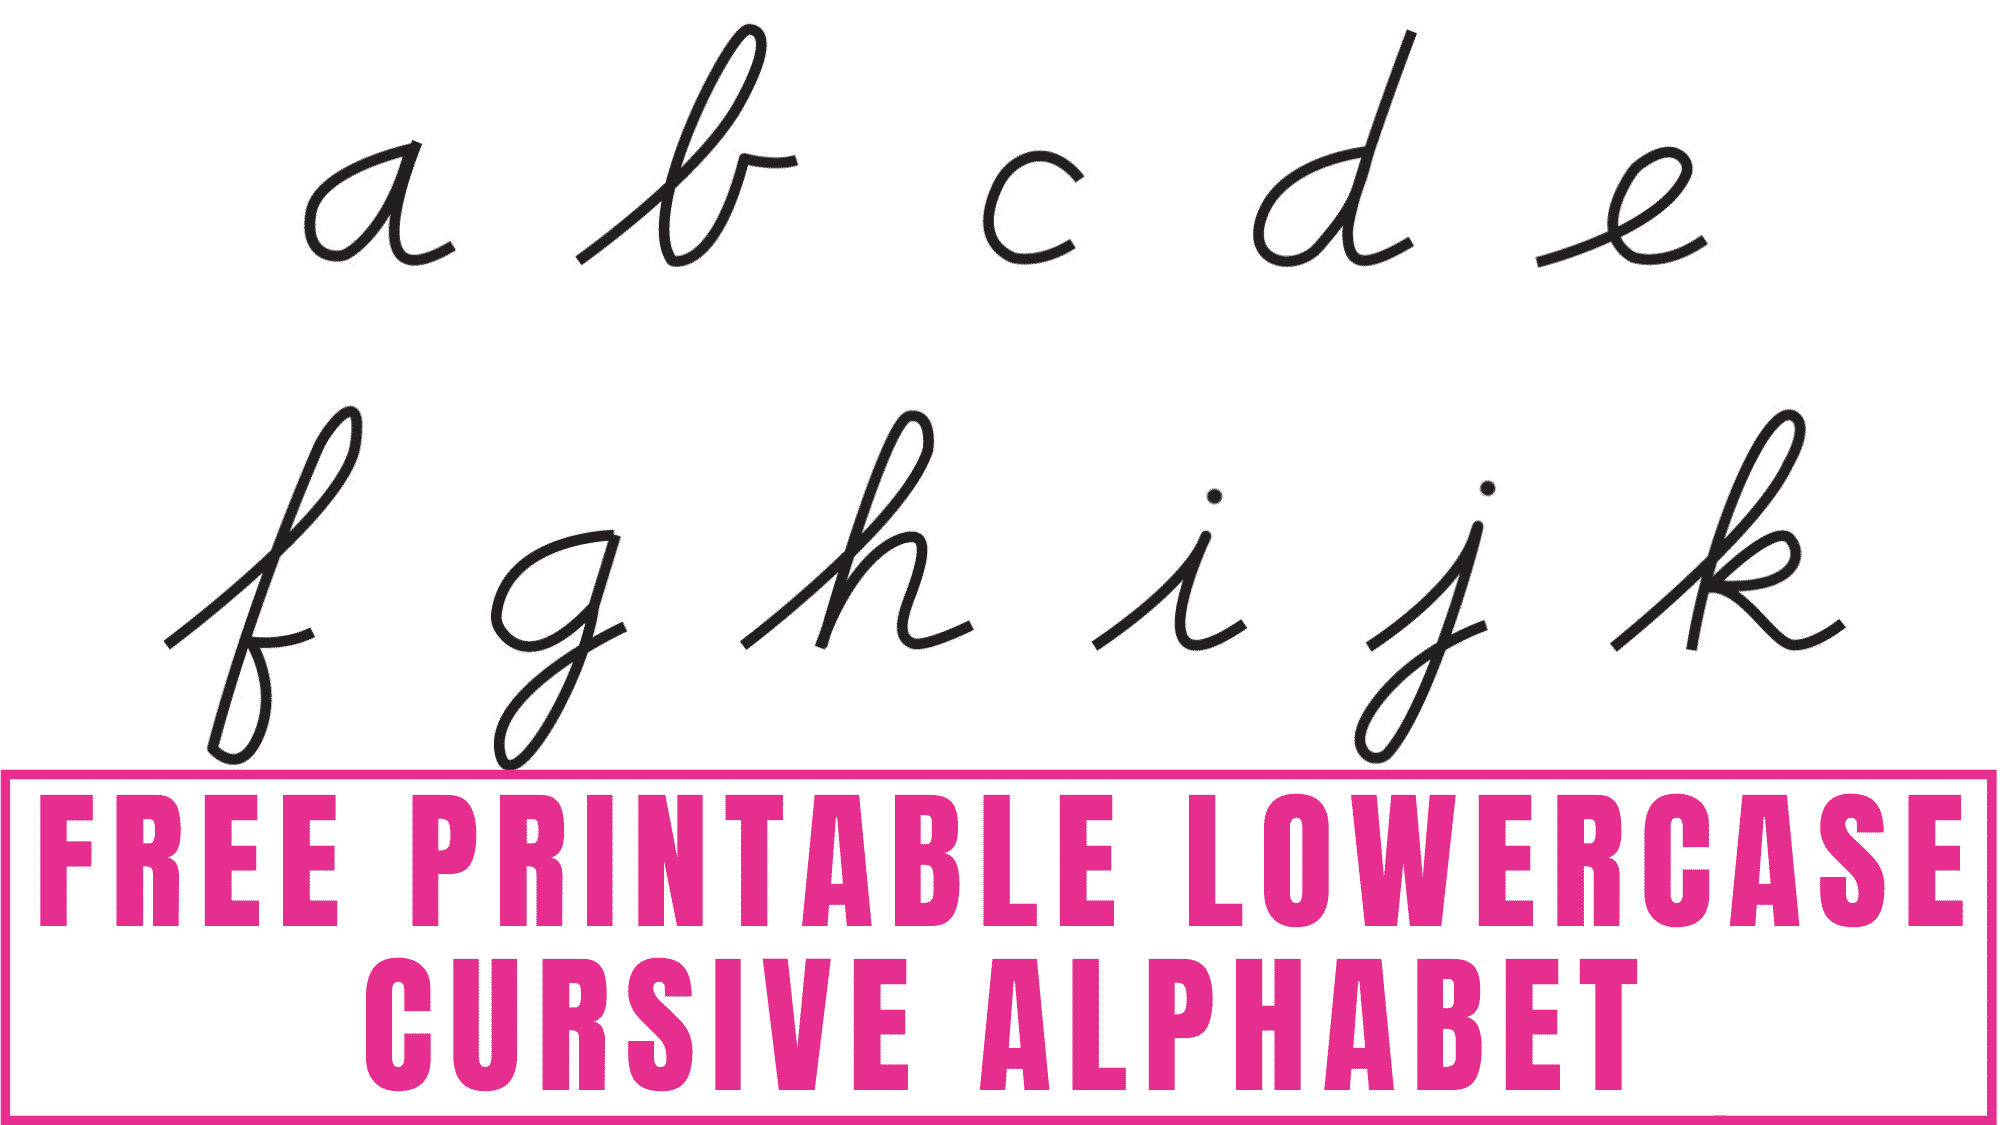 Writing lowercase cursive letters can be tricky, so start by tracing the letters in this free printable lowercase cursive alphabet until you feel more comfortable writing them free-hand.